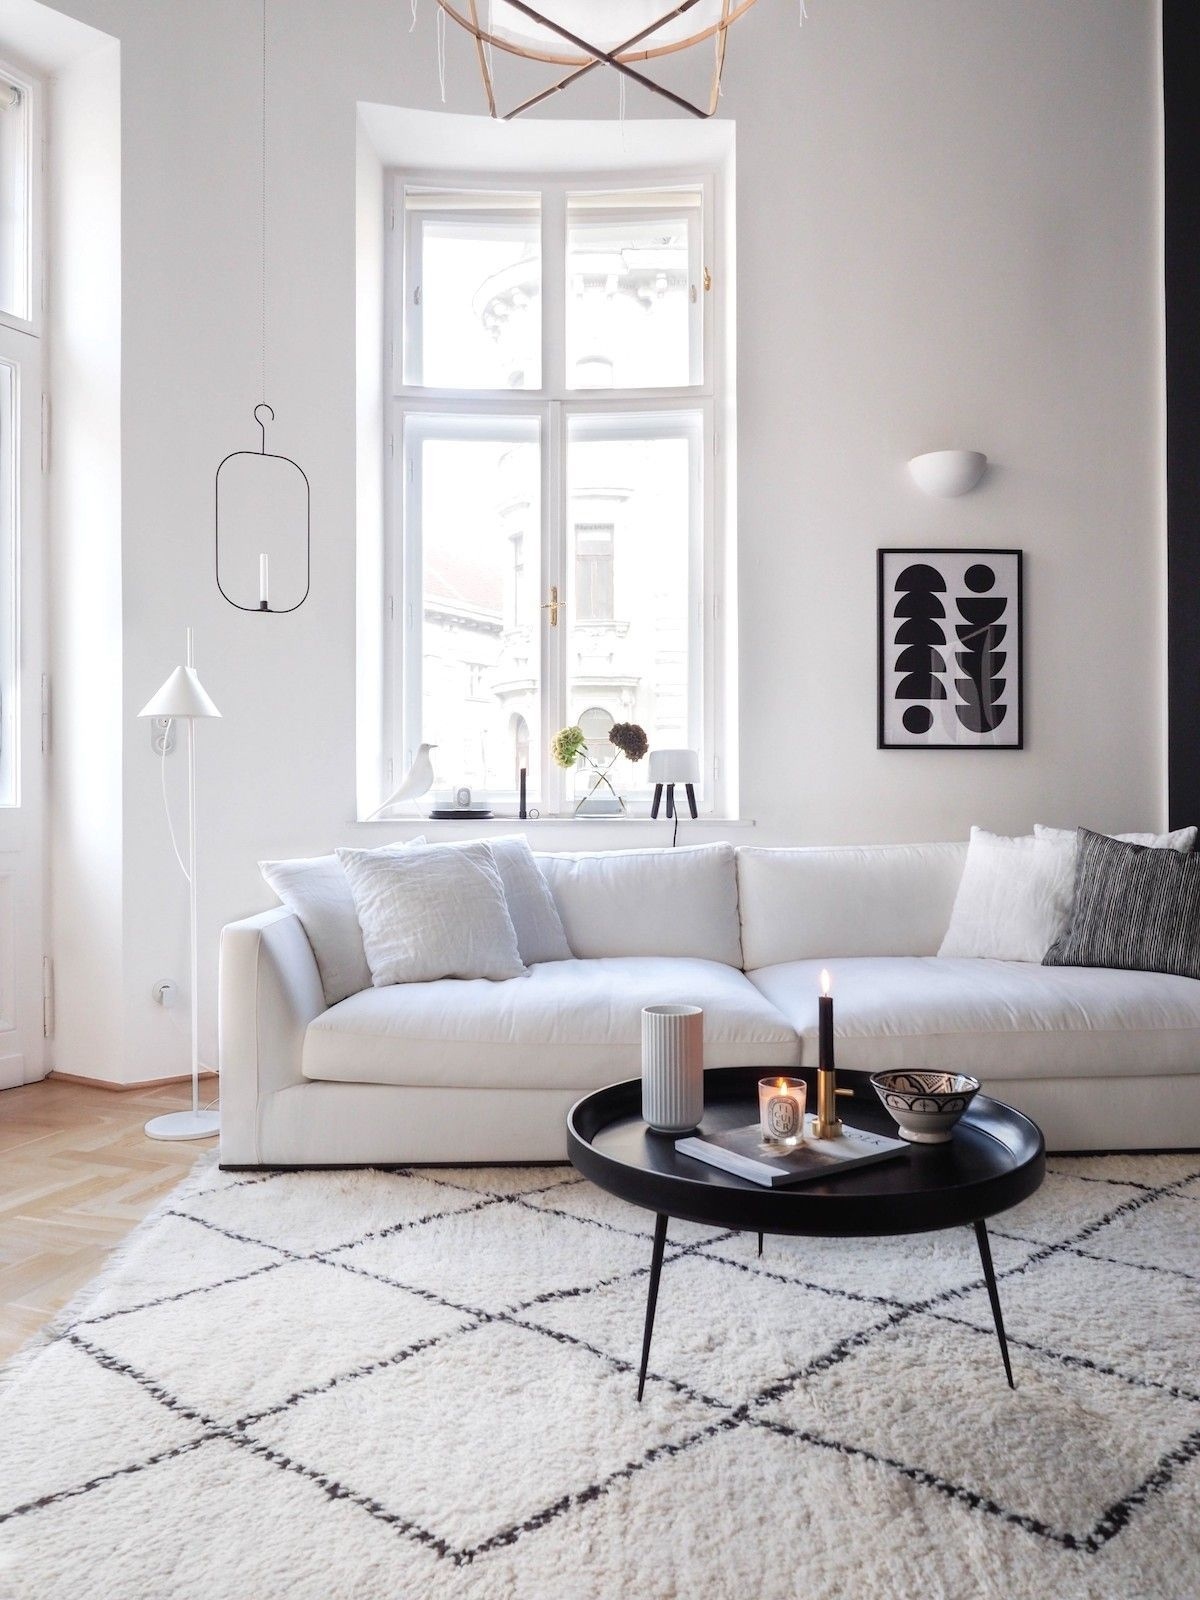 Irresistible Living Room Decor Games Online On Charming 12 Scandinavian Rugs for the Perfect nordic Look On Living Room Decor Games Online